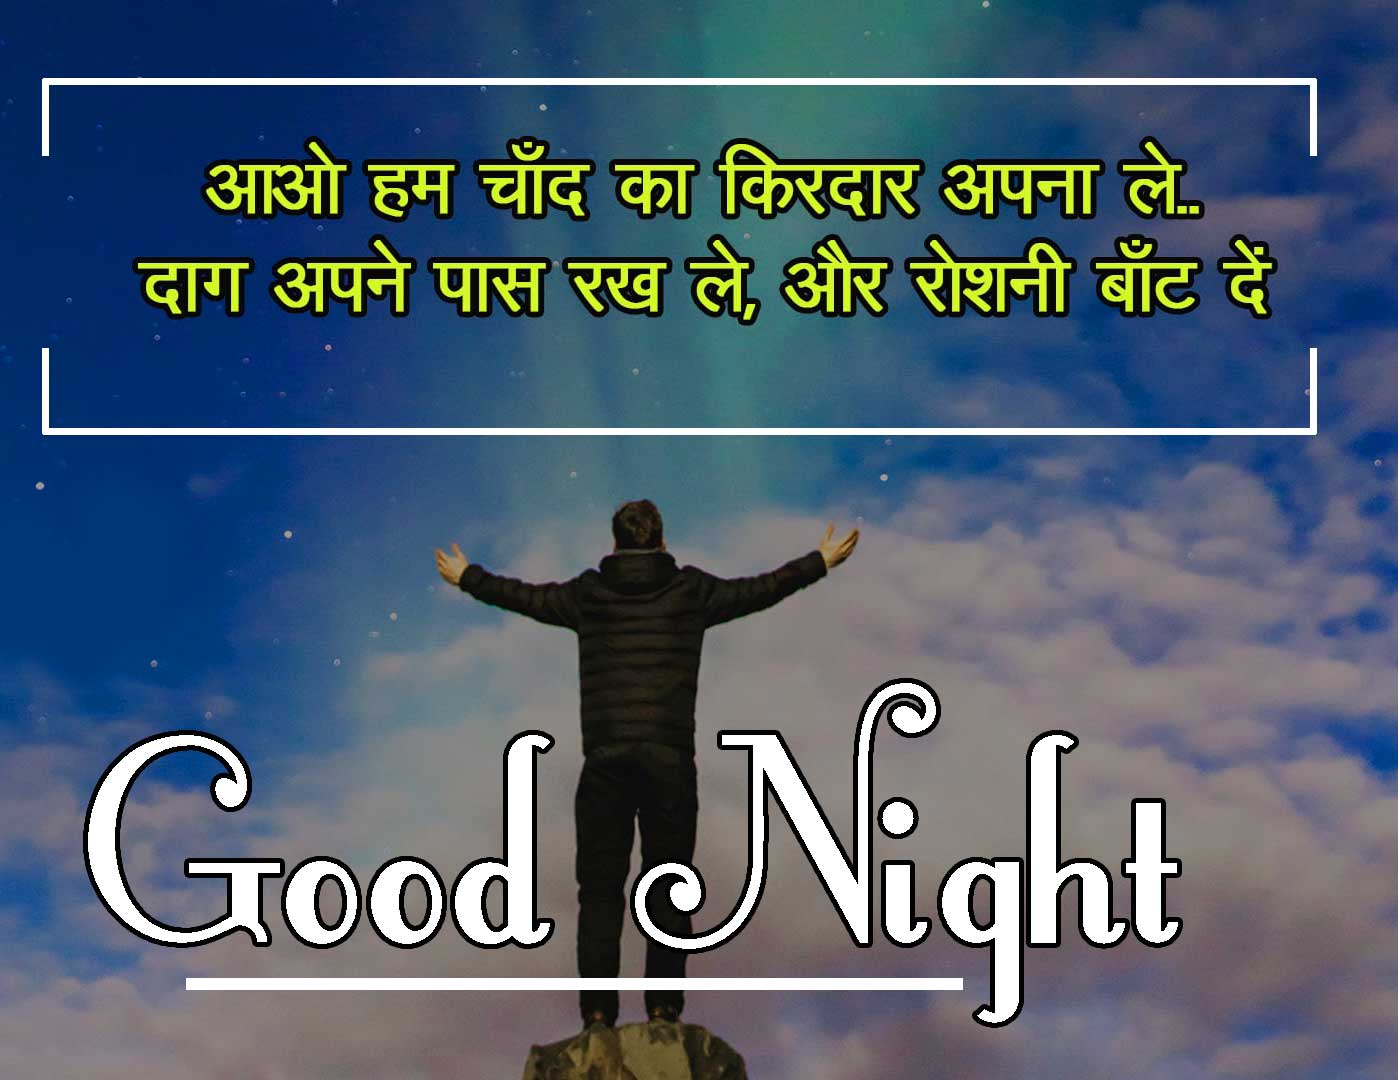 Good Night Images With Hindi Shayari 9